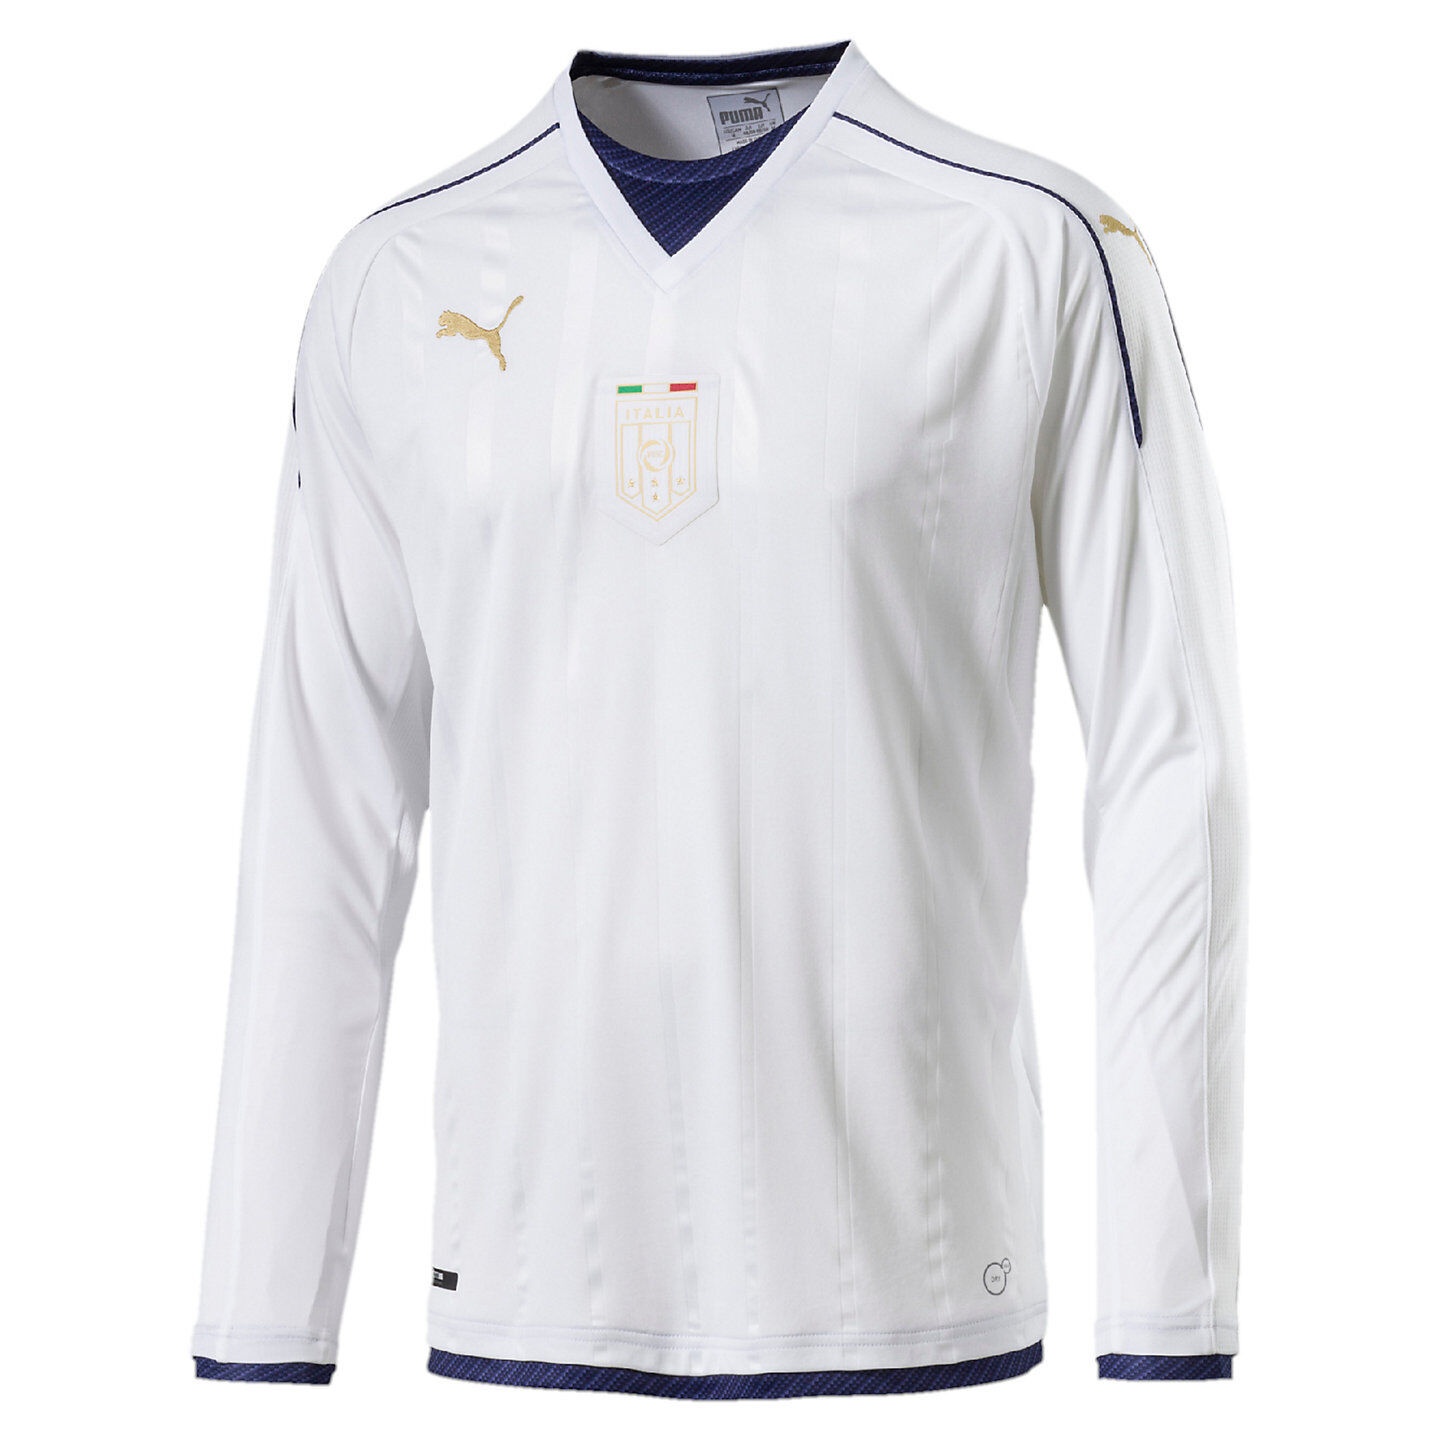 Puma  - Italia  2016 Tribute DryCell Long Sleeve Away Soccer Jersey Weiß